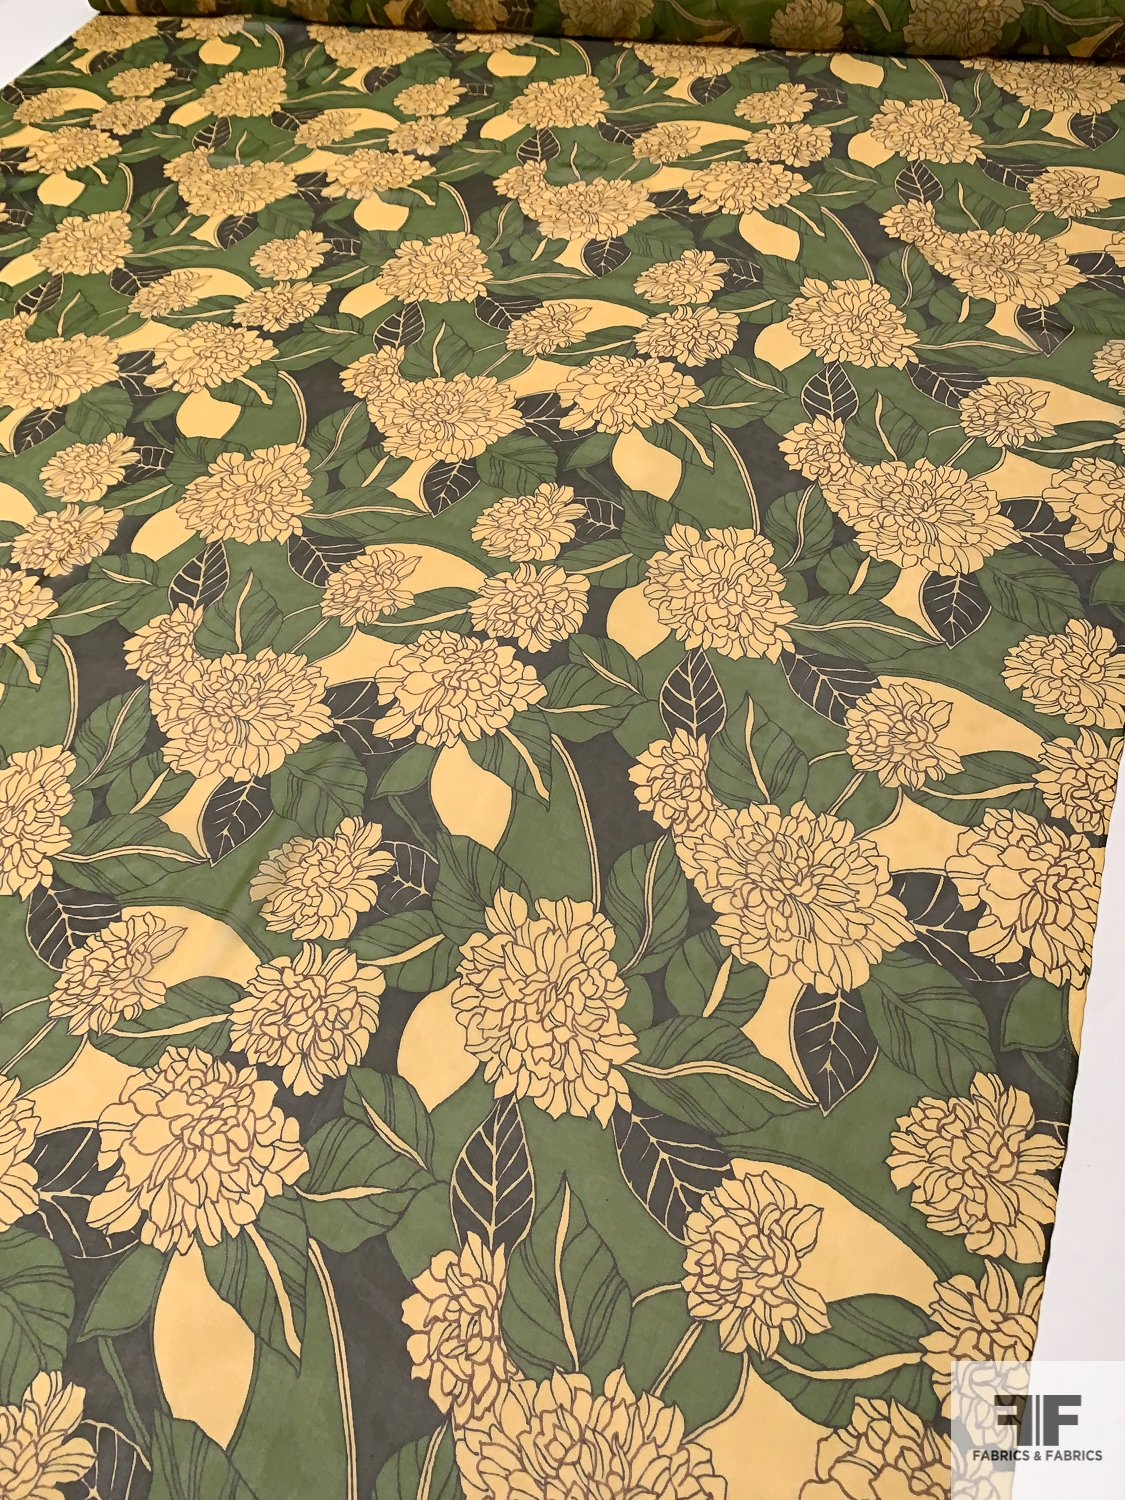 Rainforest Floral Printed Silk Chiffon - Yellow / Olive Green / Forest Green